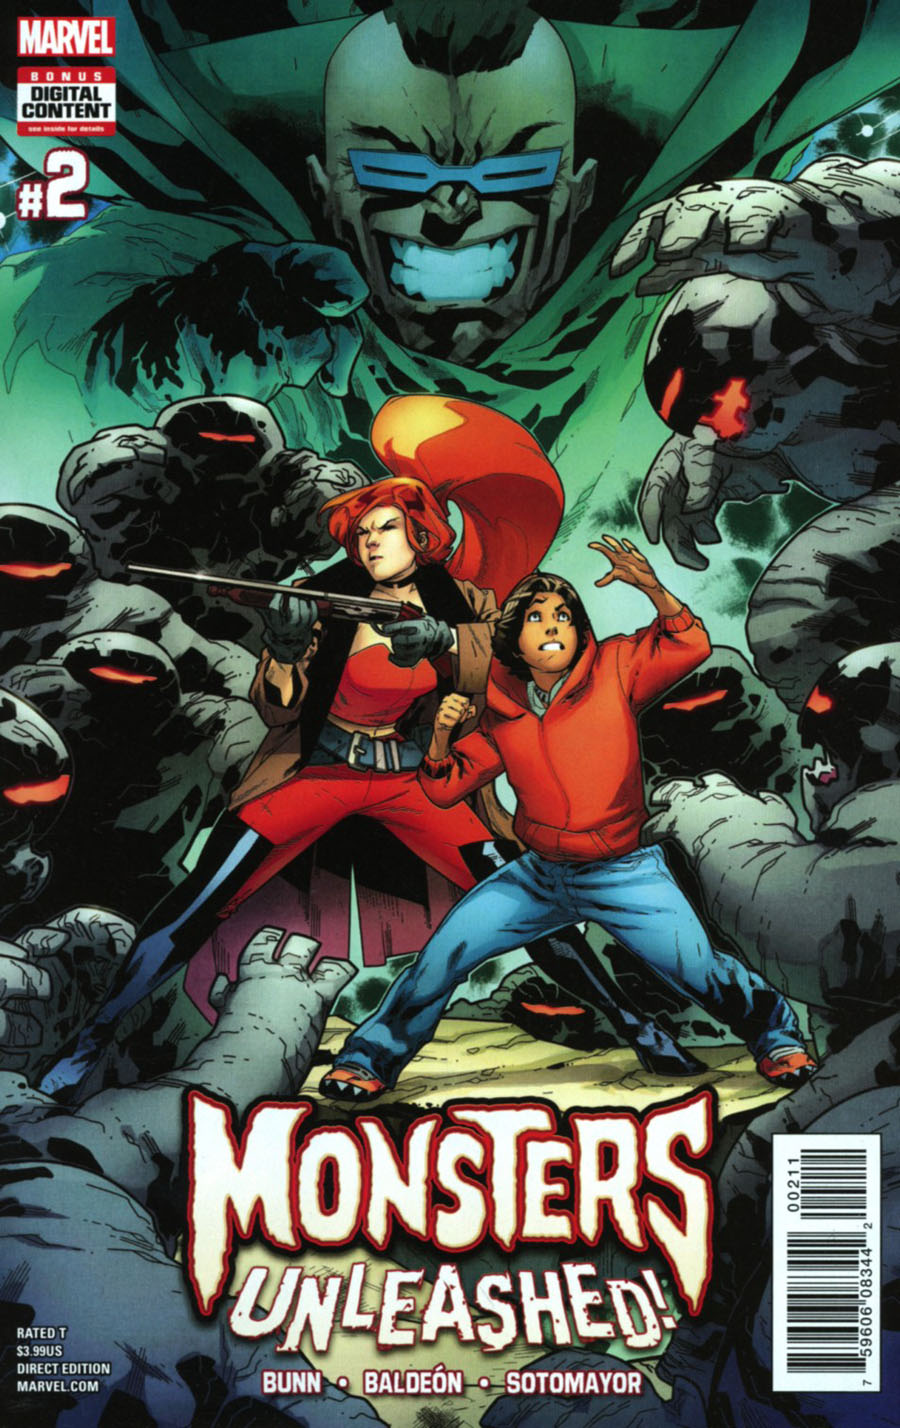 Monsters Unleashed Vol 2 #2 Cover A Regular RB Silva Cover